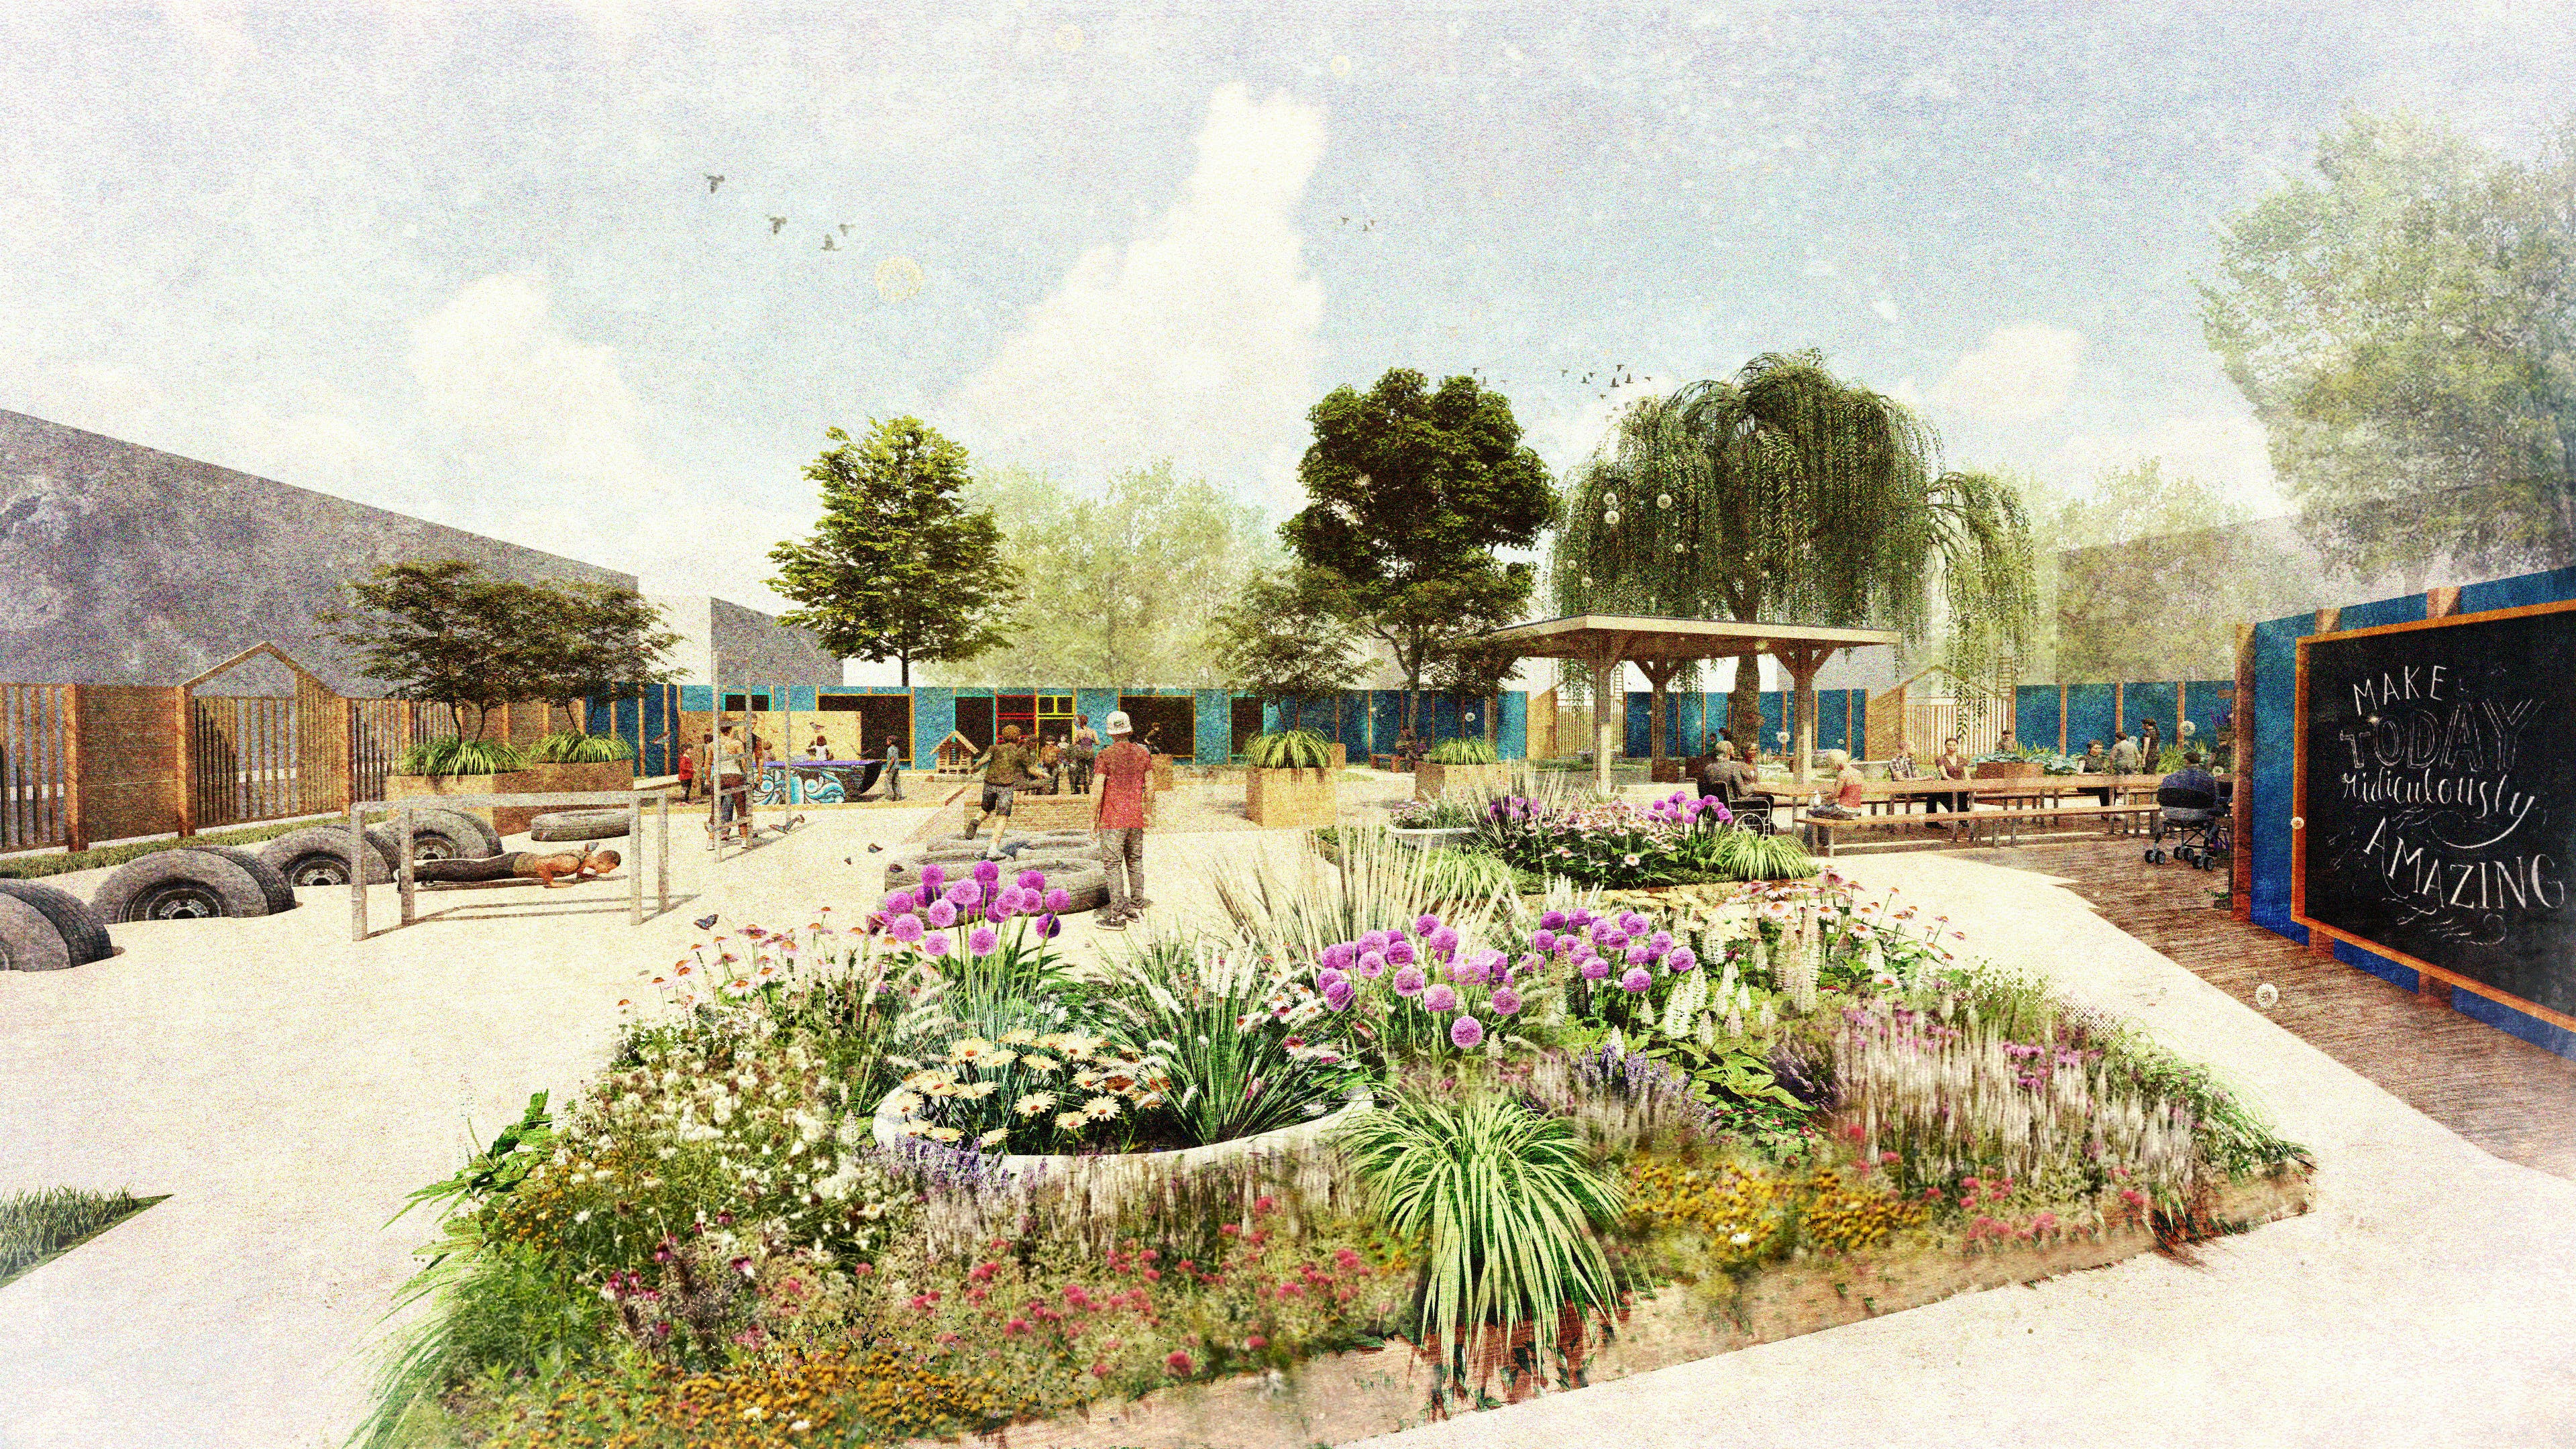 Artists' impression of the park